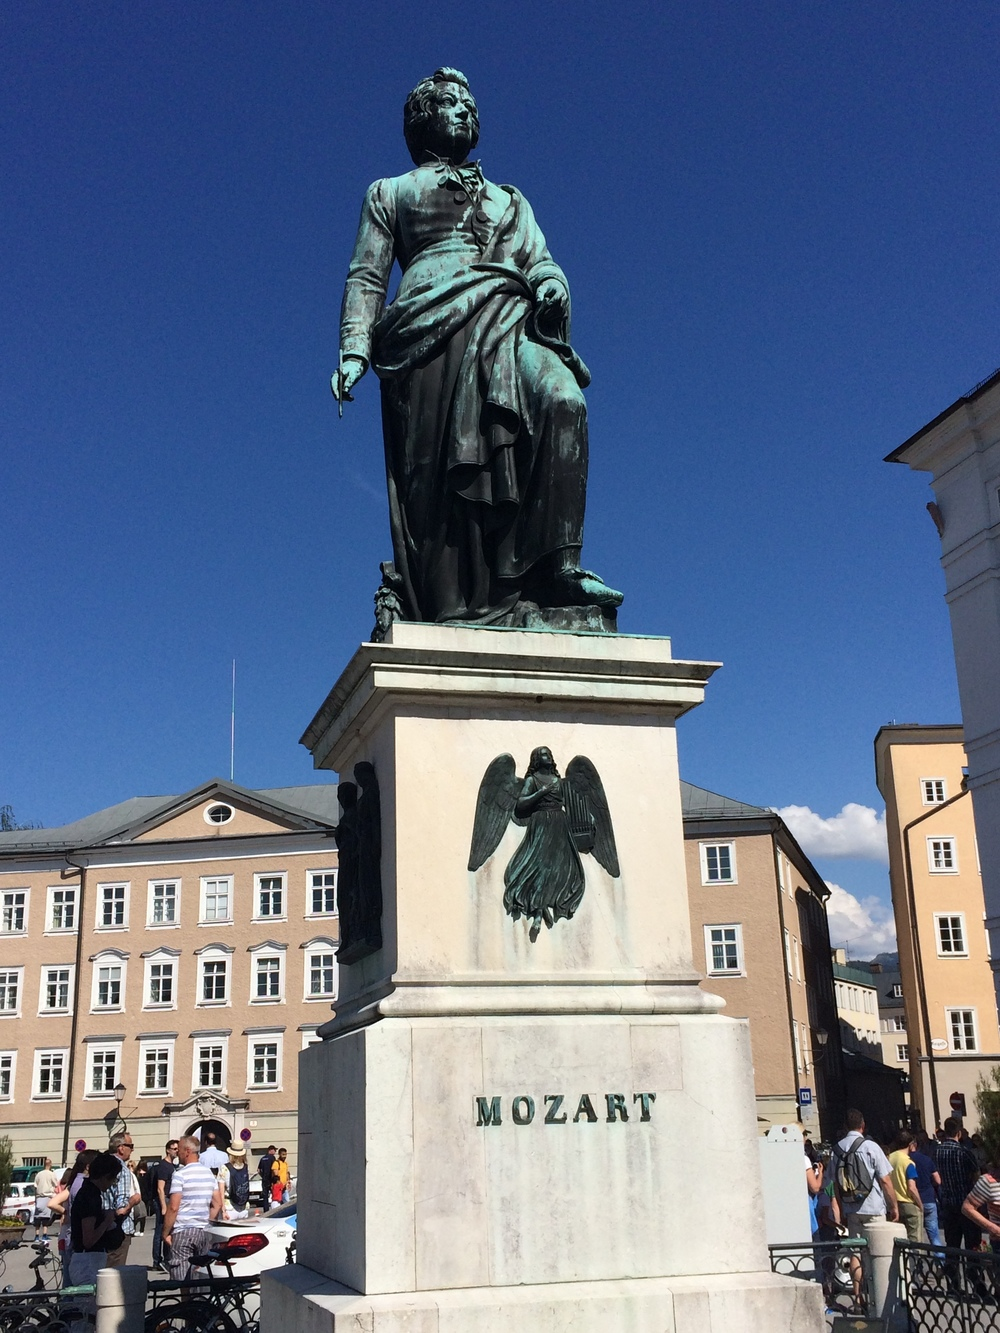 Famed native son of Salzburg